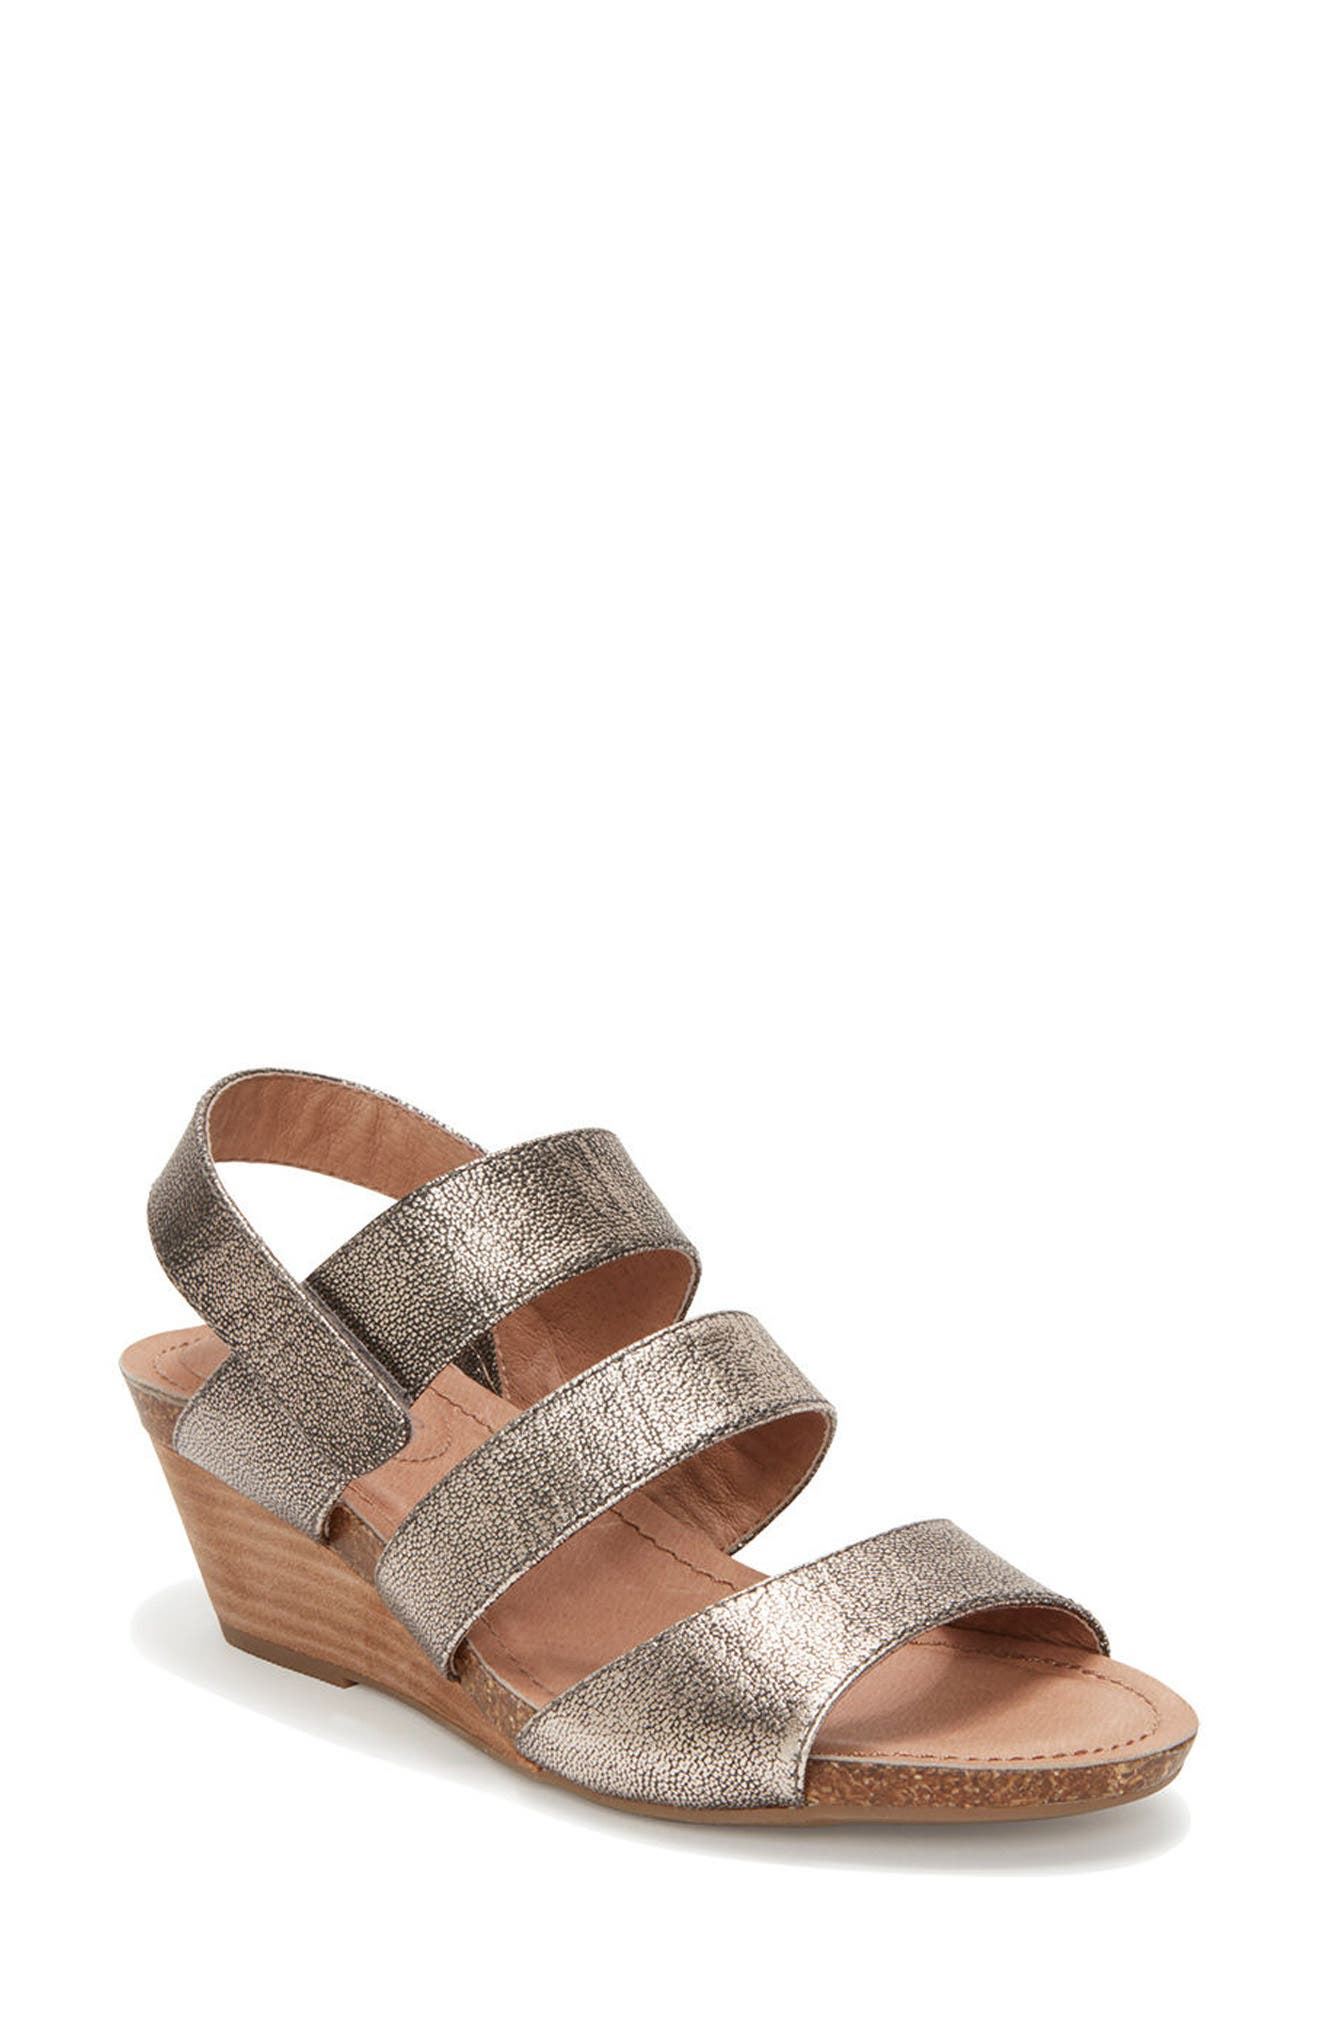 Adam Tucker Tora Wedge Sandal,                             Main thumbnail 2, color,